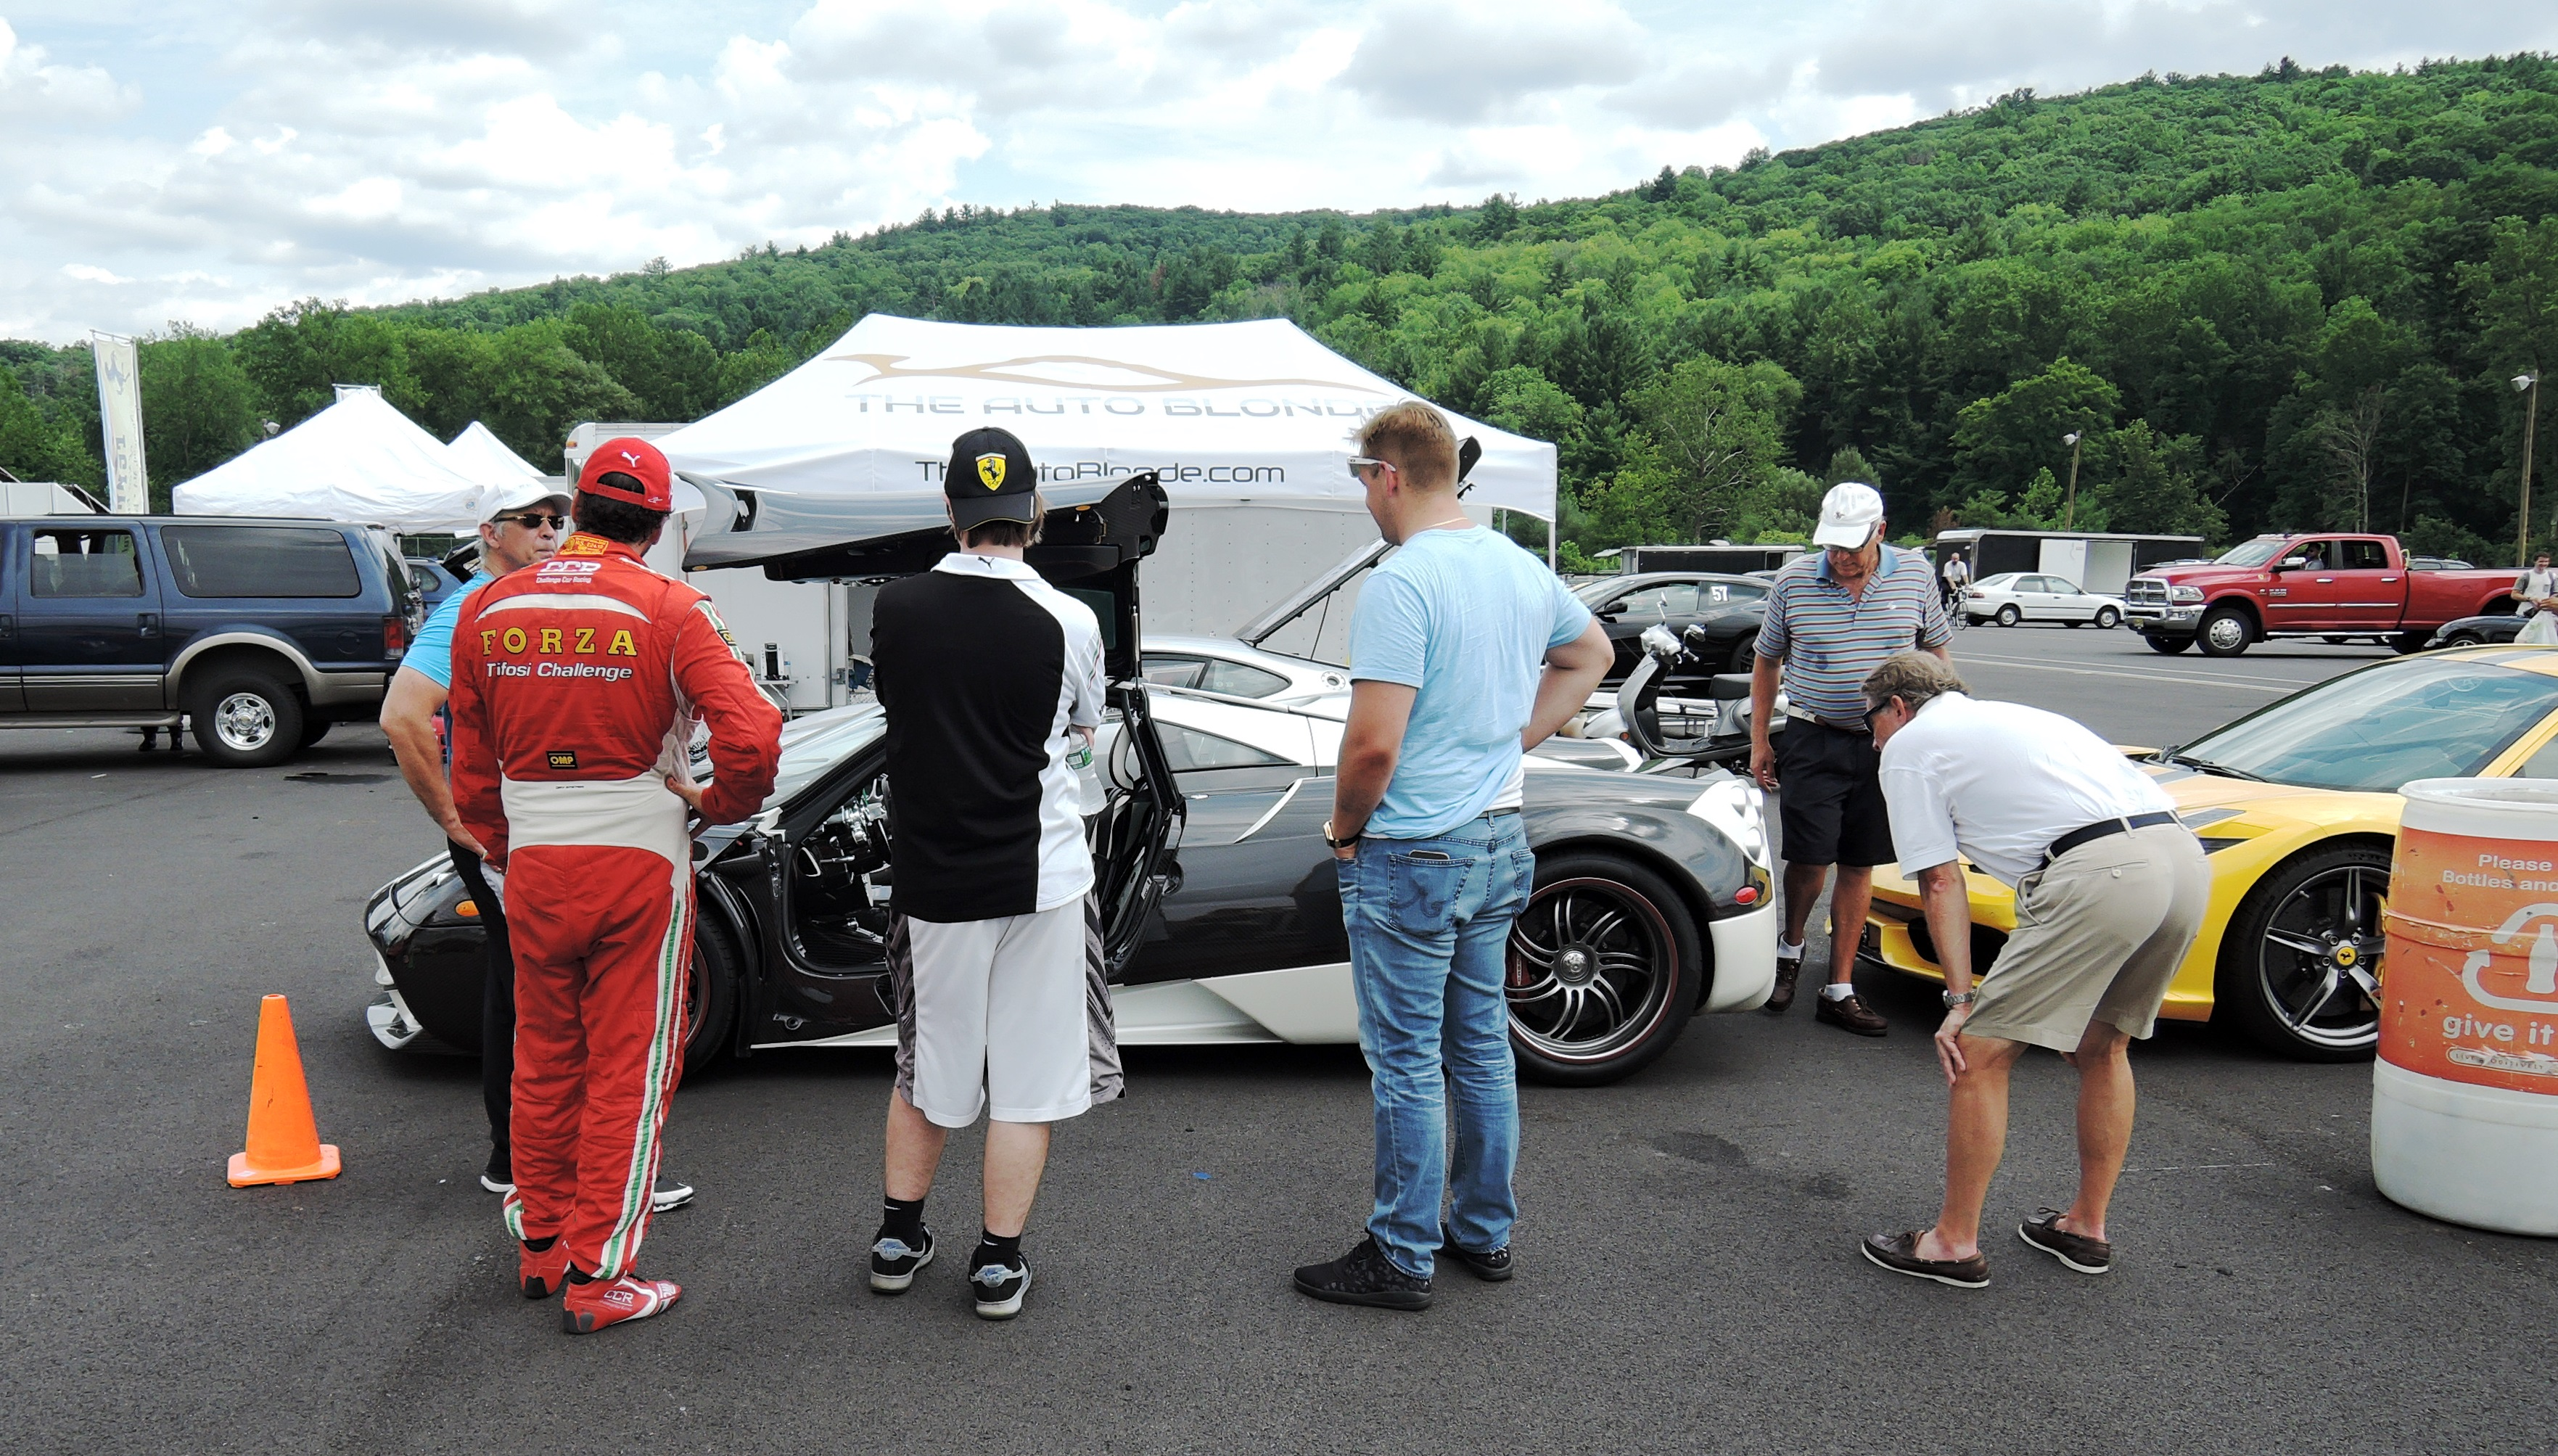 Pagani Huayra and Ferrari 360 Challenge car - ferraris at lime rock park